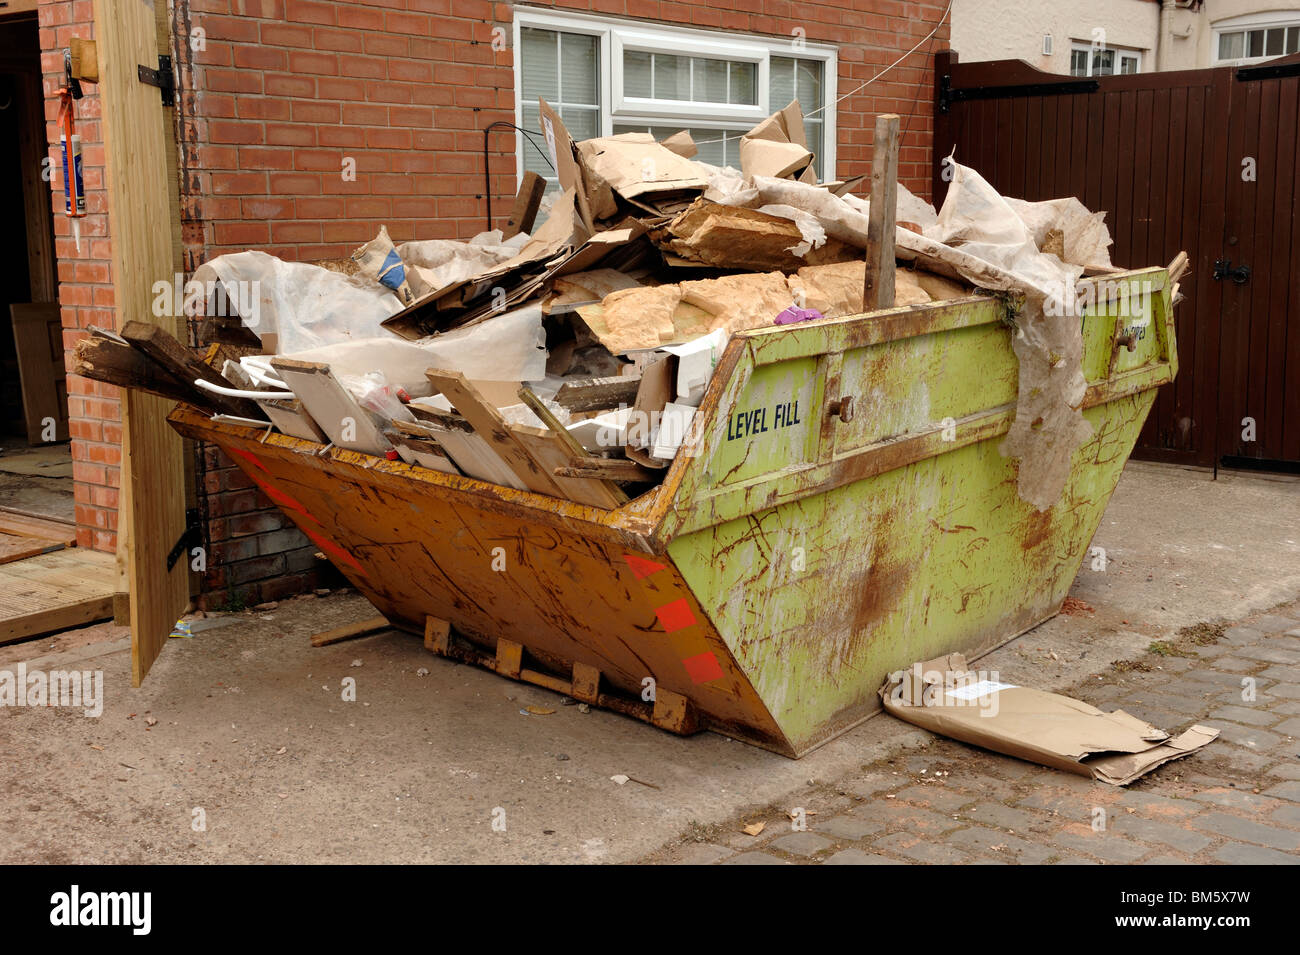 Skip full of rubbish - Stock Image